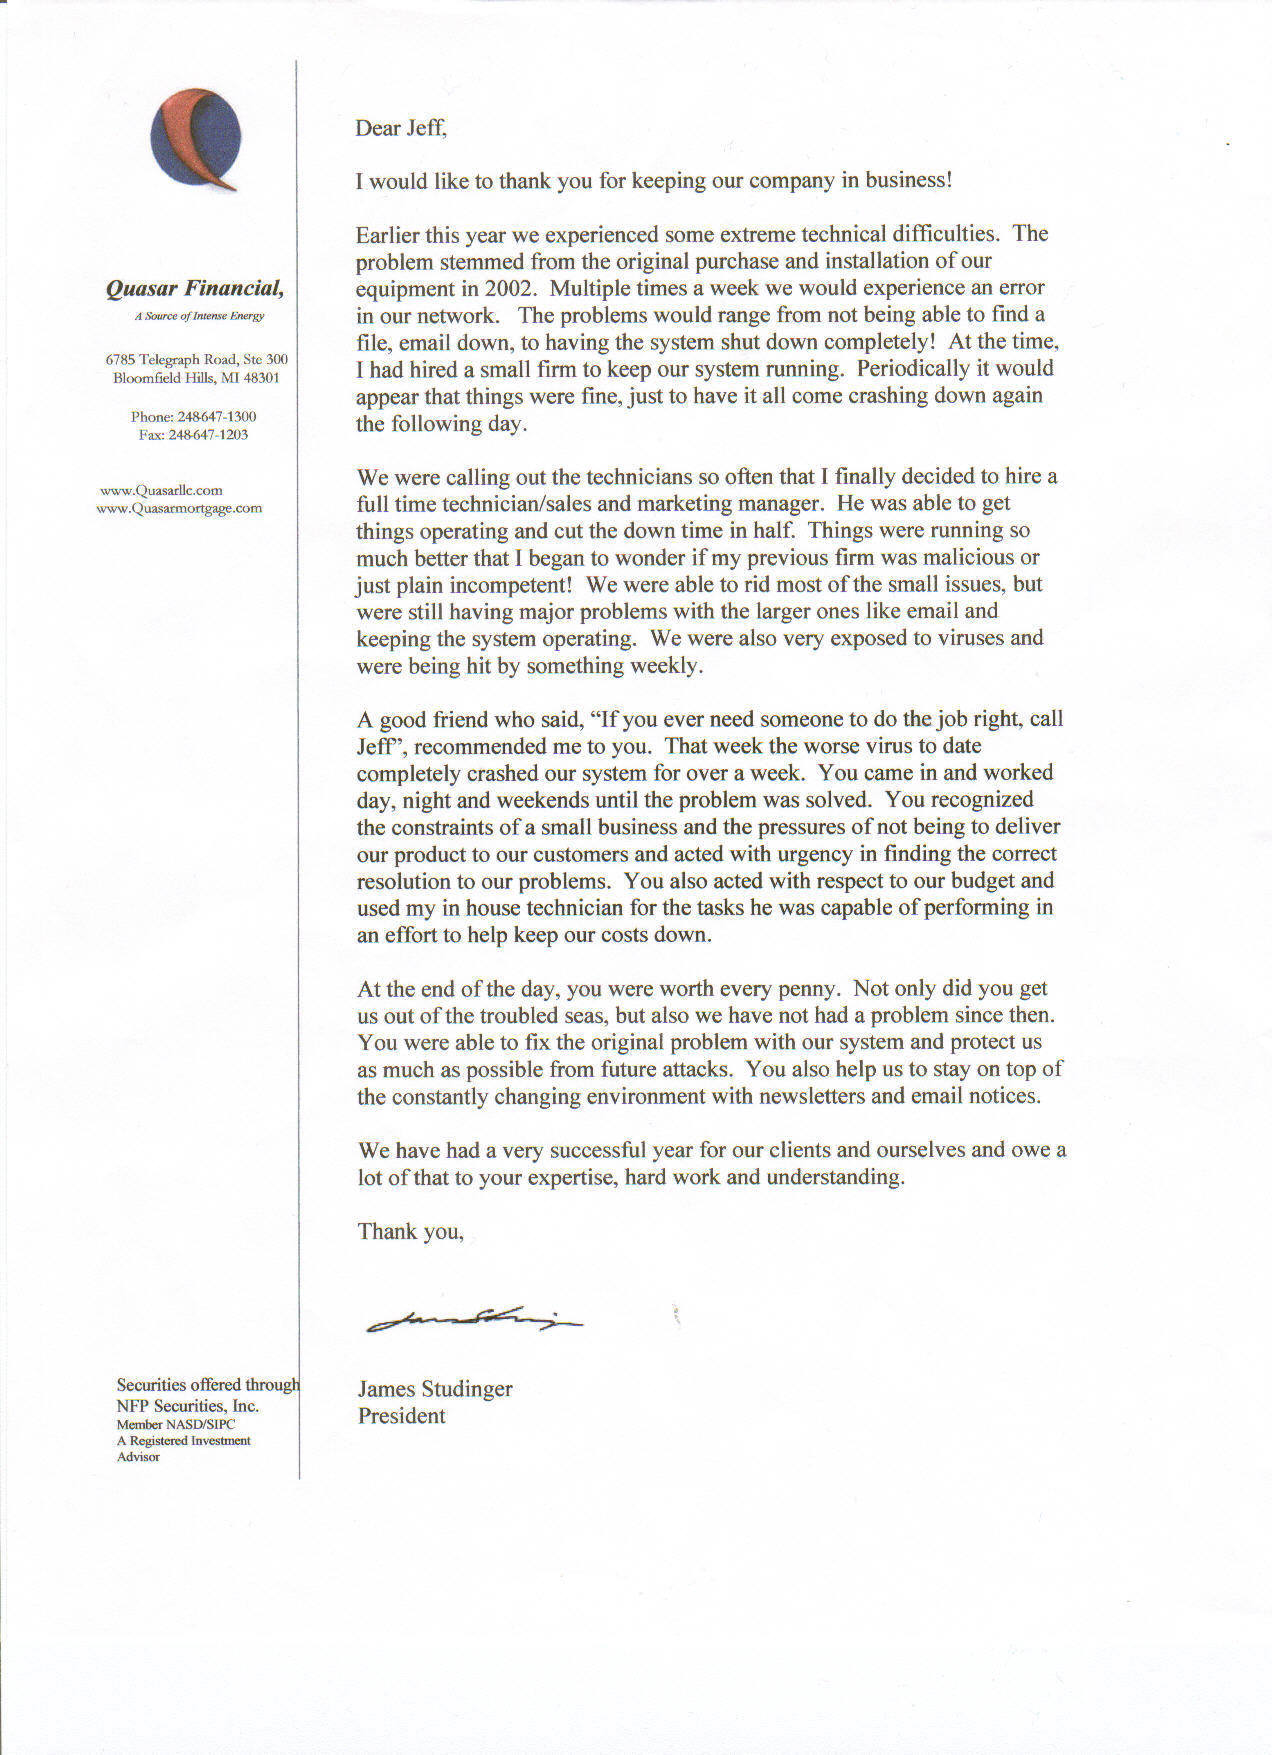 letter of recoomendation from Qausar Financial